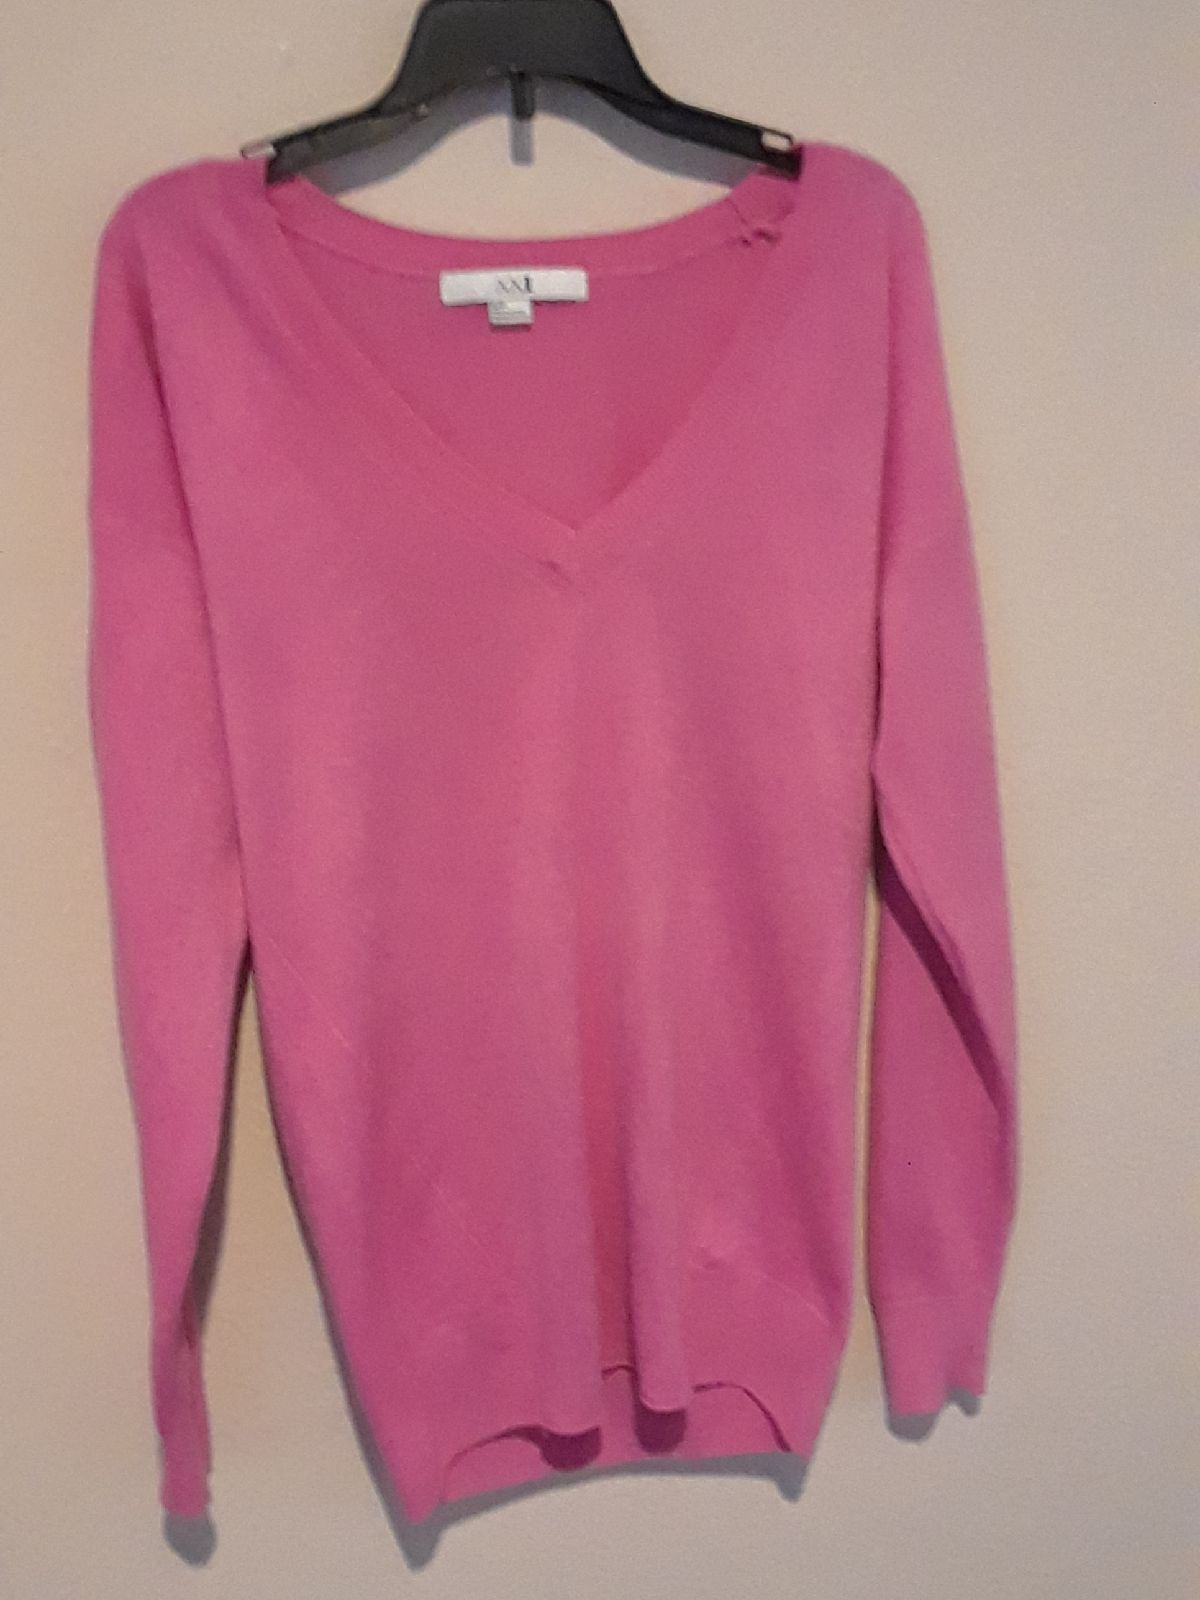 forever 21 pink sweater - Mercari: BUY & SELL THINGS YOU LOVE